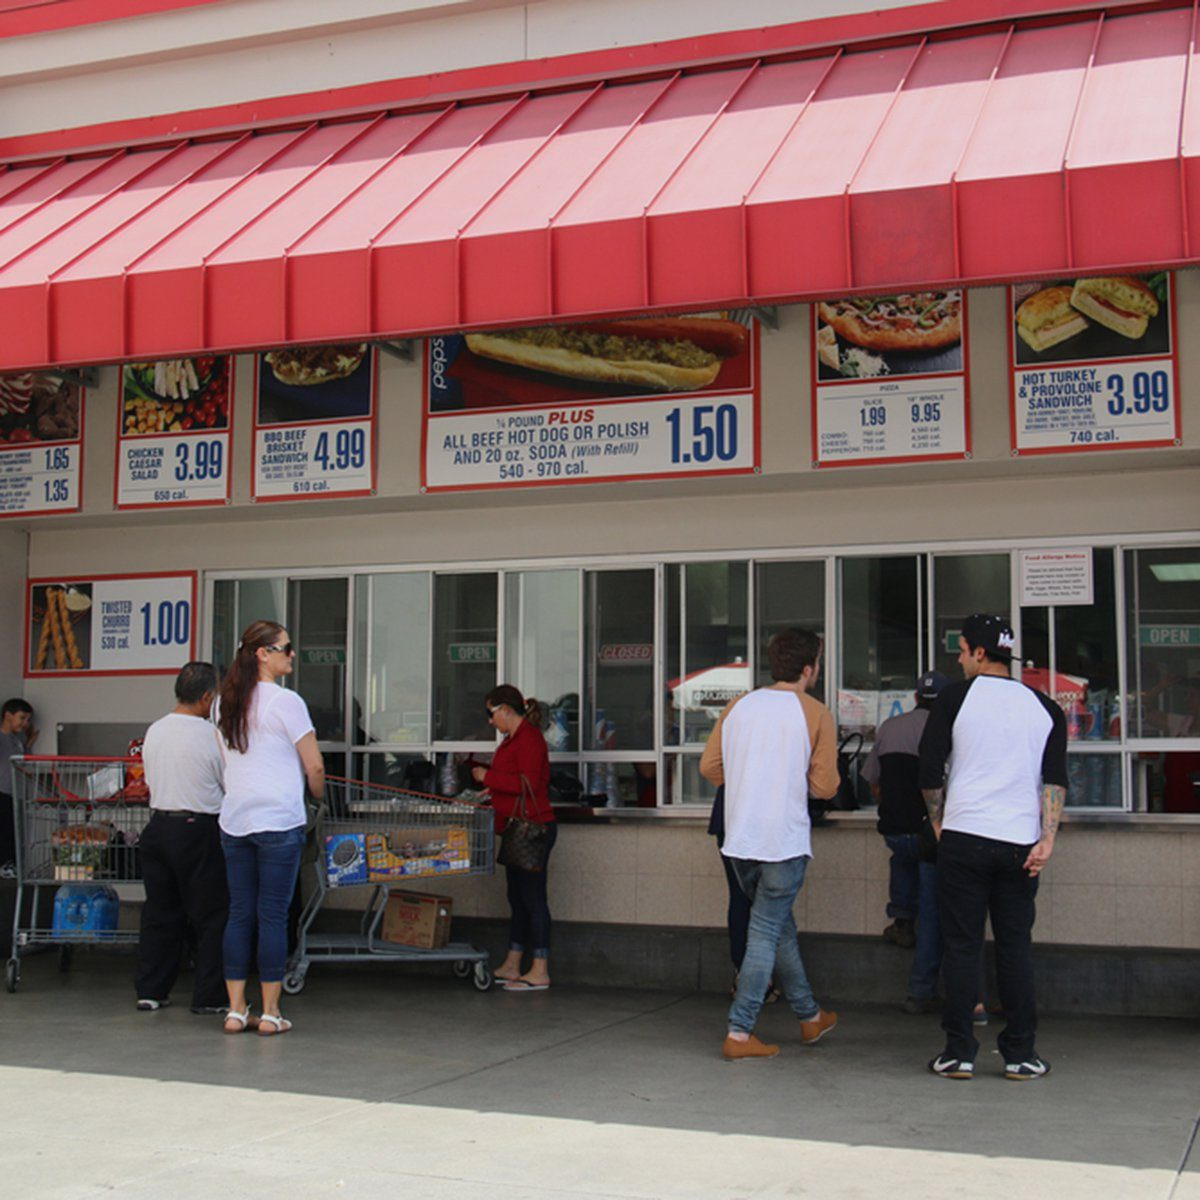 Norwalk, California, USA - April 27, 2016: Customers are purchasing food with low price at the food court of Costco, the largest membership-only warehouse in the United States.; Shutterstock ID 413085085; Job (TFH, TOH, RD, BNB, CWM, CM): TOH